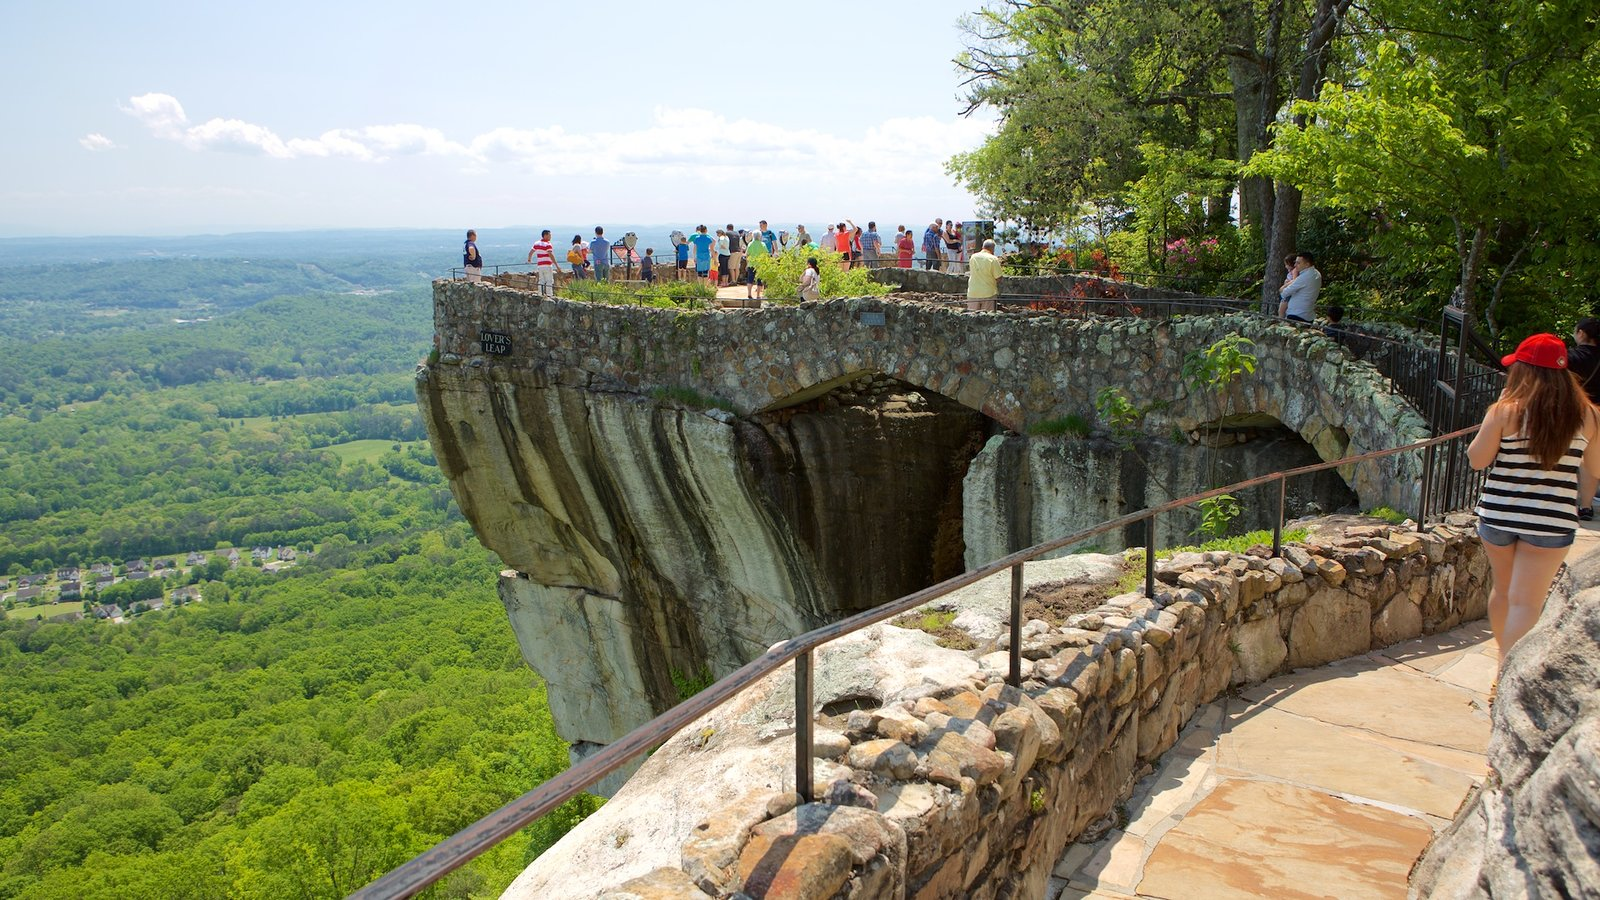 Lookout Mountain featuring views and tranquil scenes as well as a large group of people